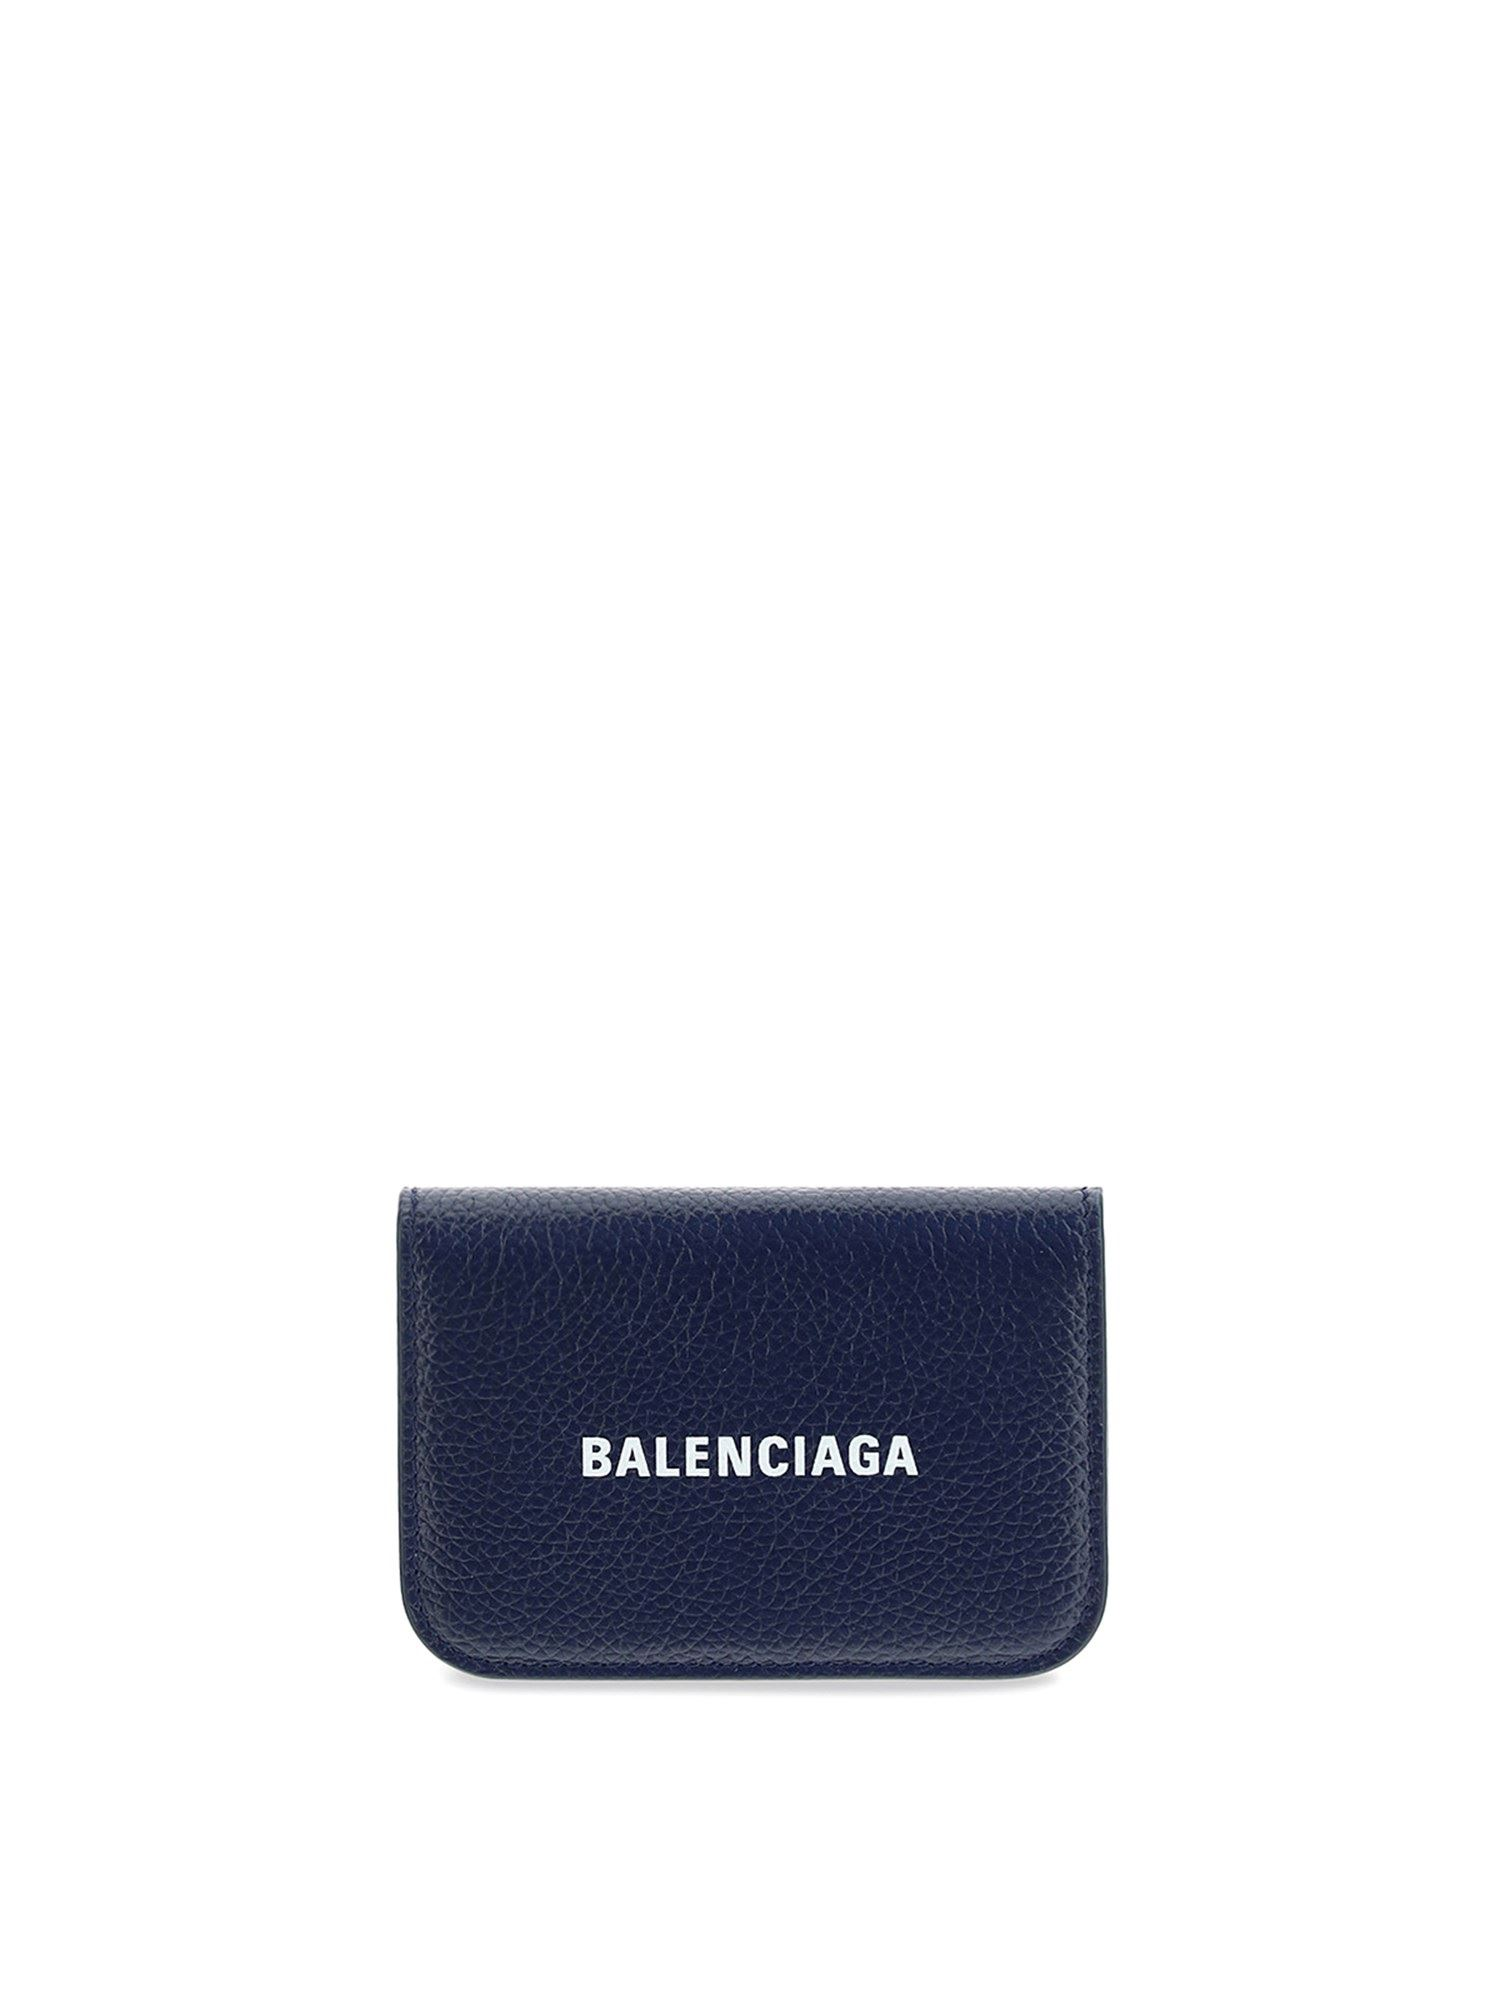 Balenciaga Wallets LEATHER TRIFOLD WALLET IN BLUE